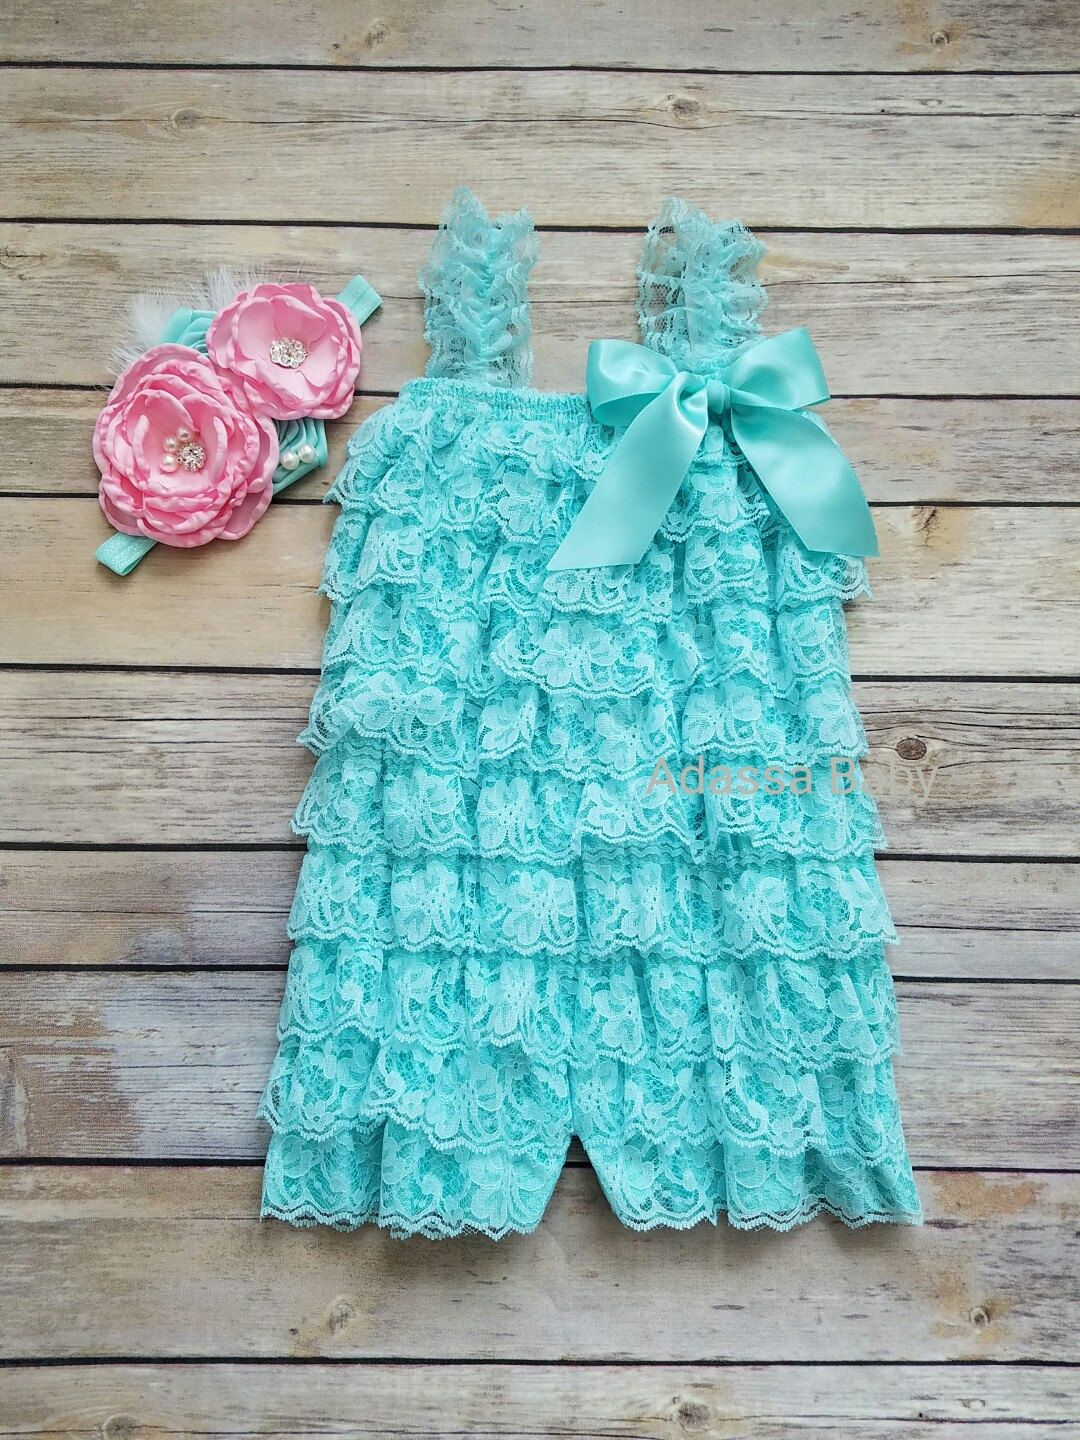 f088efec6 Aqua Lace Romper Ruffle Romper Headband Set Girl Photo Prop Outfit Baby  Girl Outfit Girls 1st Birthday Outfit Petti Lace Romper by AdassaBaby on  Etsy